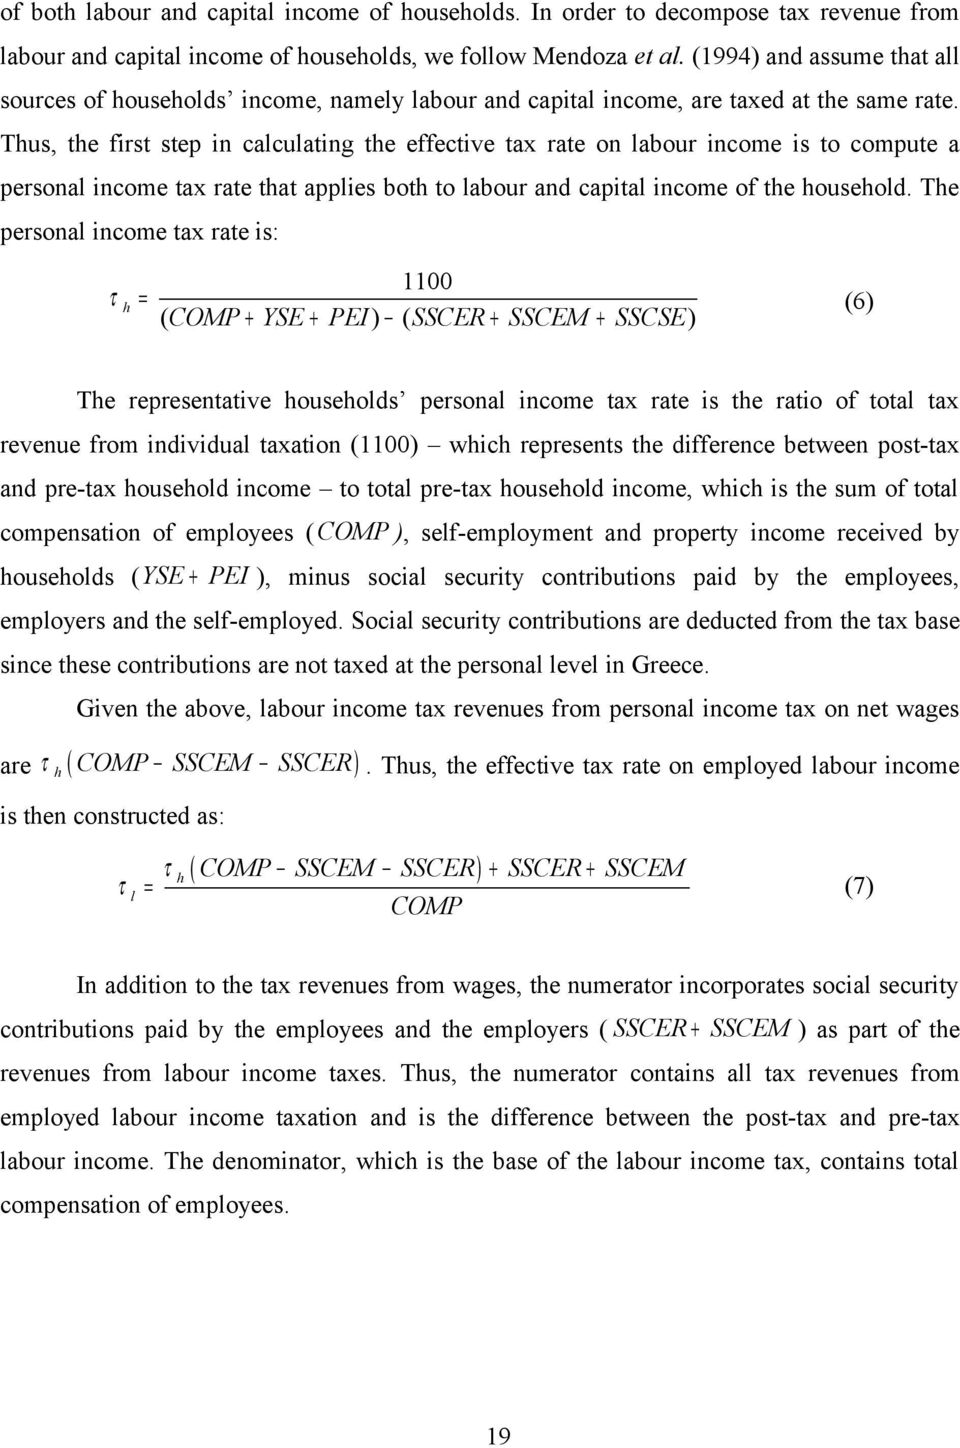 Thus, the first step in calculating the effective tax rate on labour income is to compute a personal income tax rate that applies both to labour and capital income of the household.